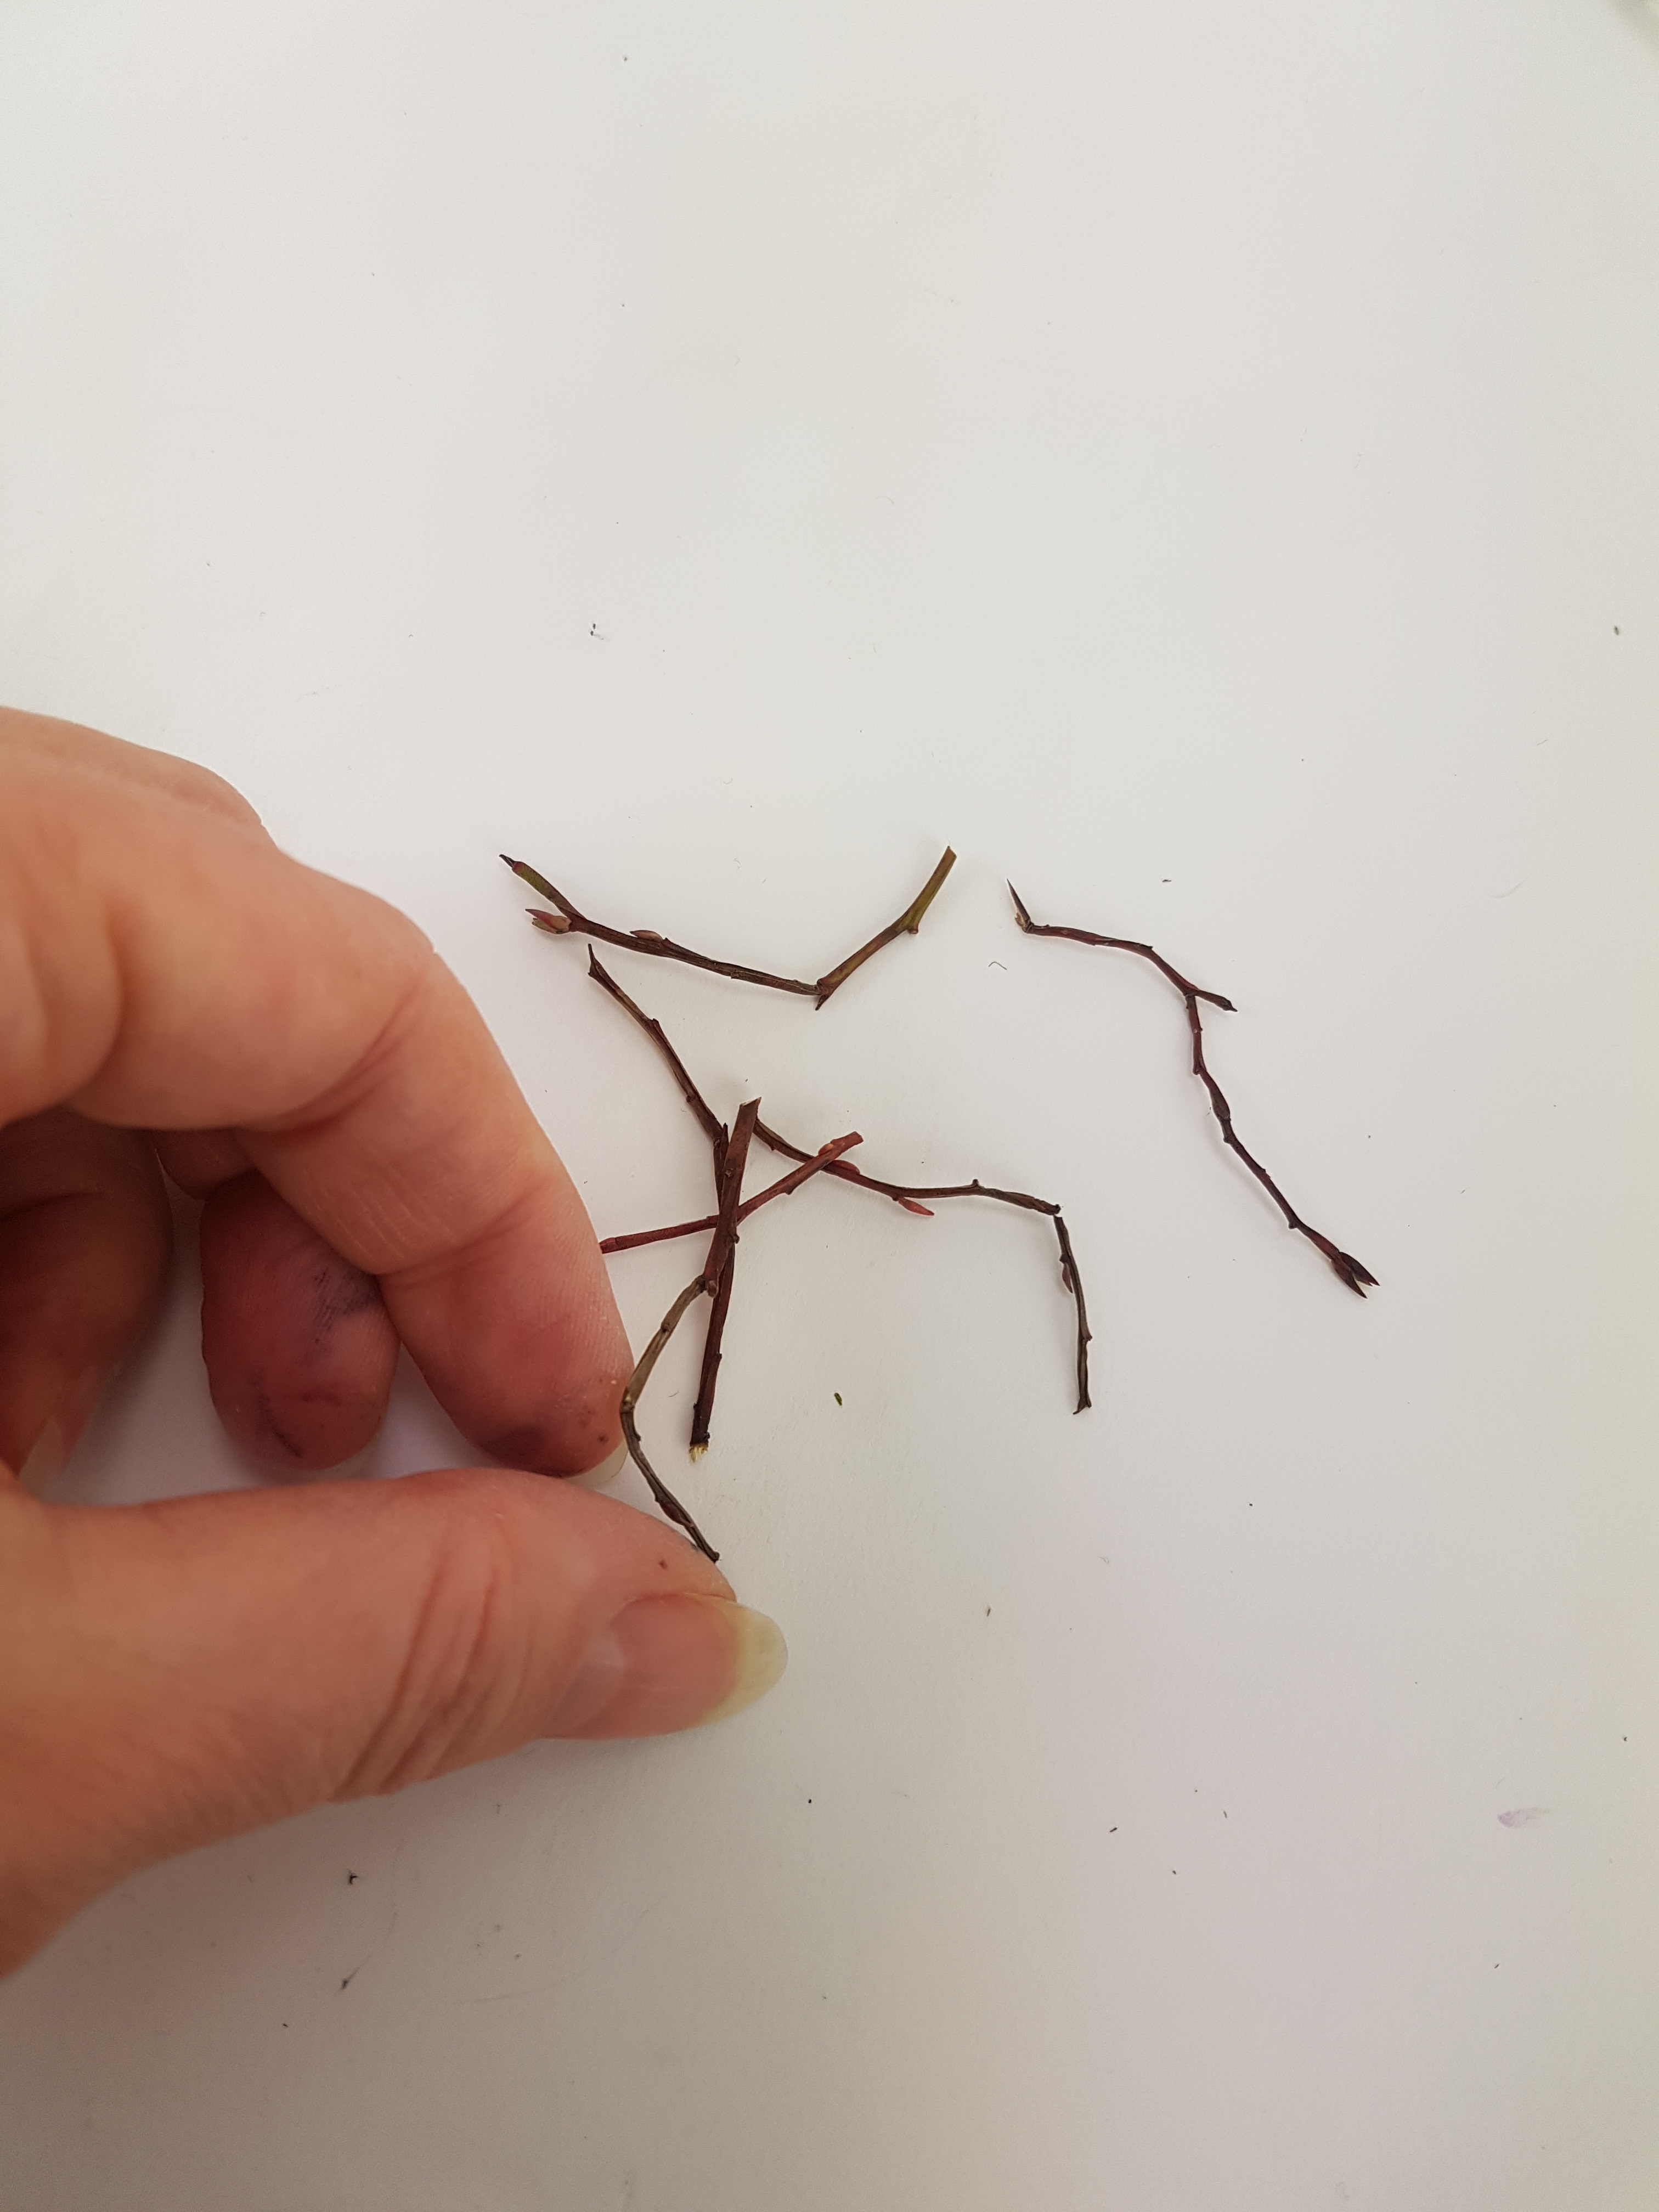 Cut eight twigs with interesting curves in them.